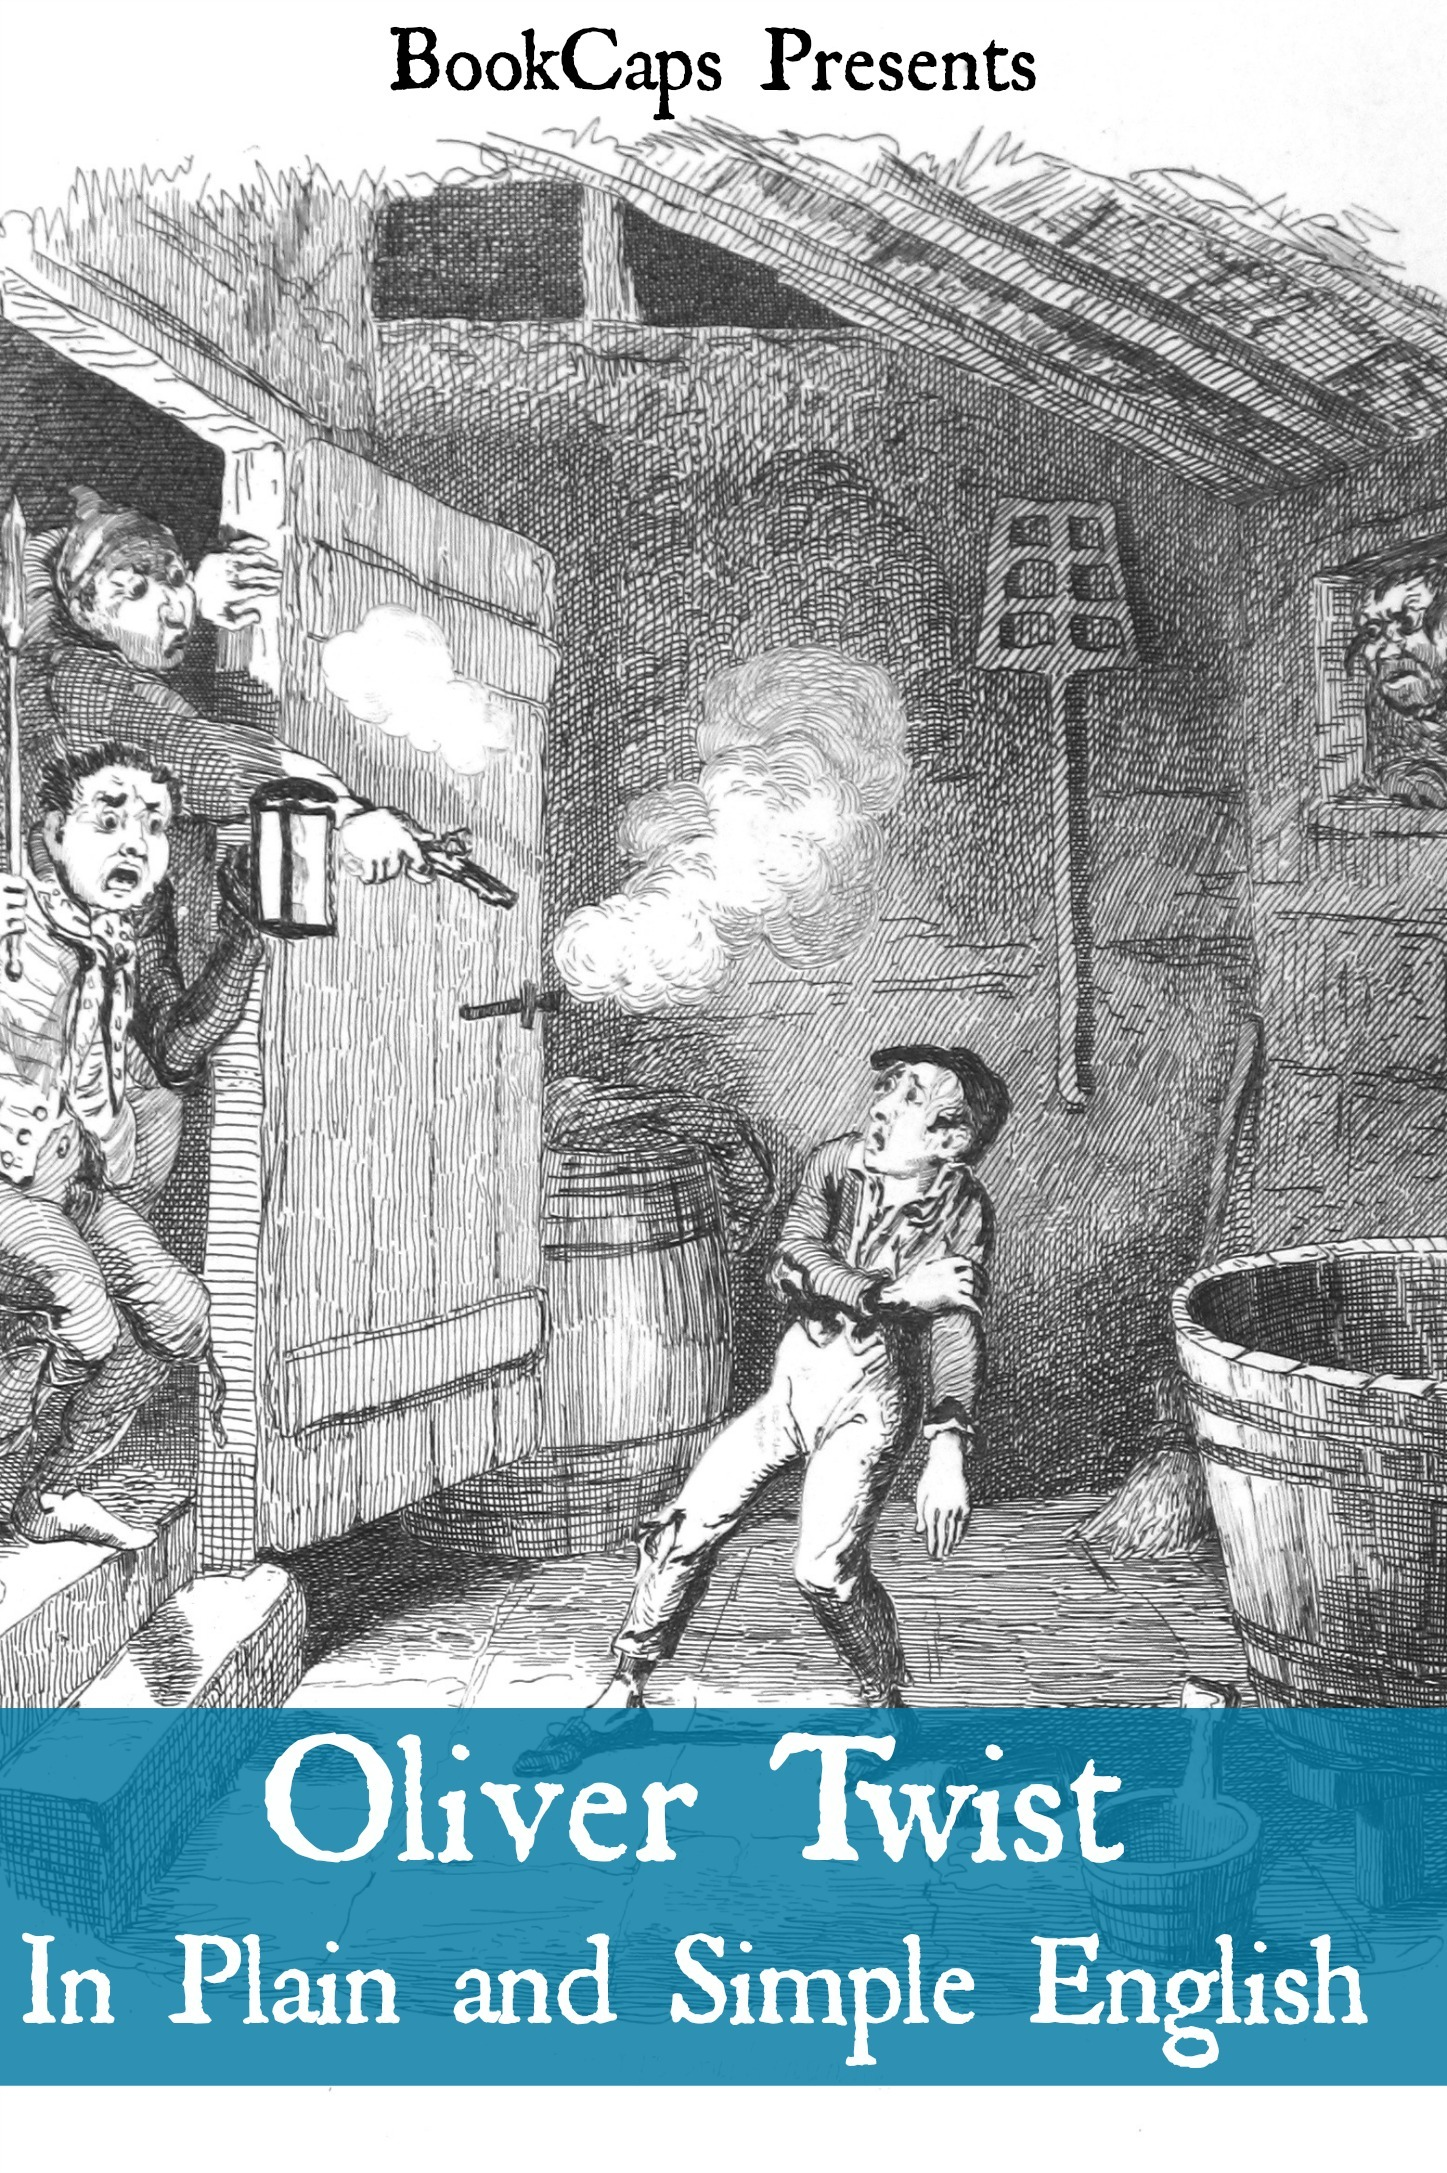 Oliver Twist In Plain and Simple English (Includes Study Guide, Complete Unabridged Book, Historical Context, Biography and Character Index)(Annotated)